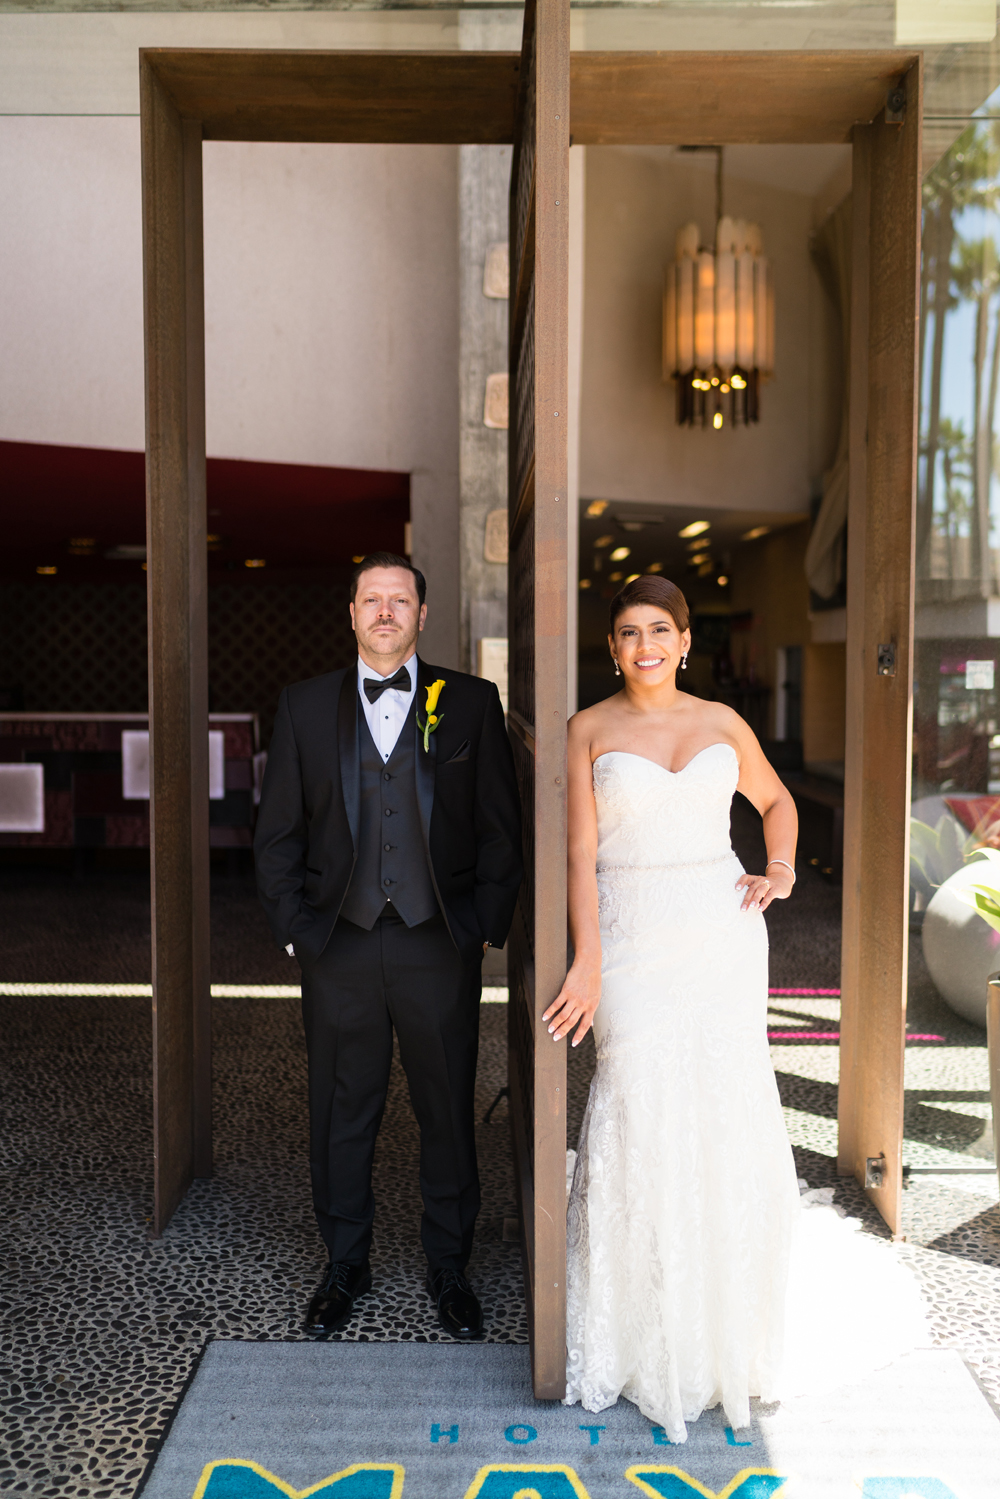 46b95-lively-navy-yellow-harbor-wedding-bride-groom-waiting-to-see-eachother.jpg